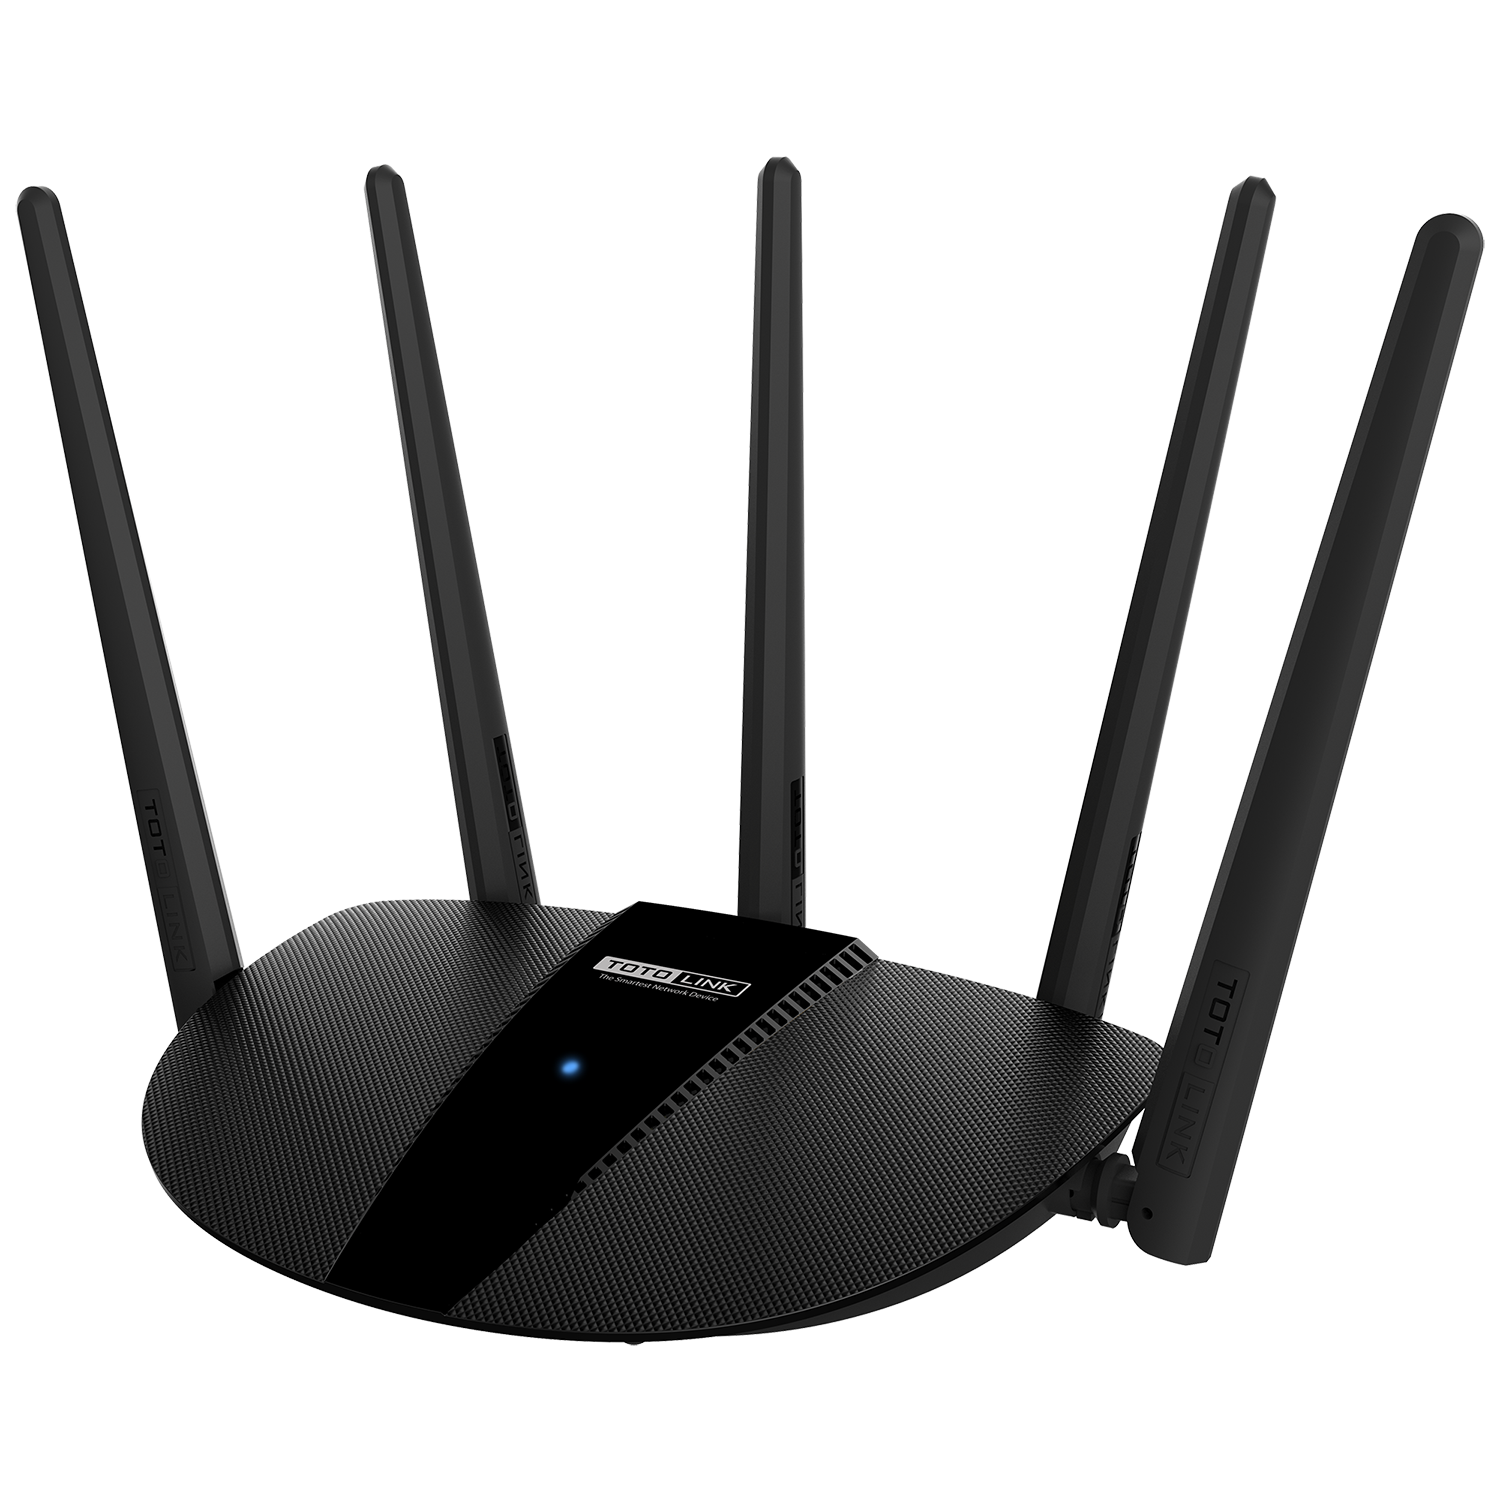 TOTOLINK (A3100R) AC1200 Wireless Dual Band Gigabit Router